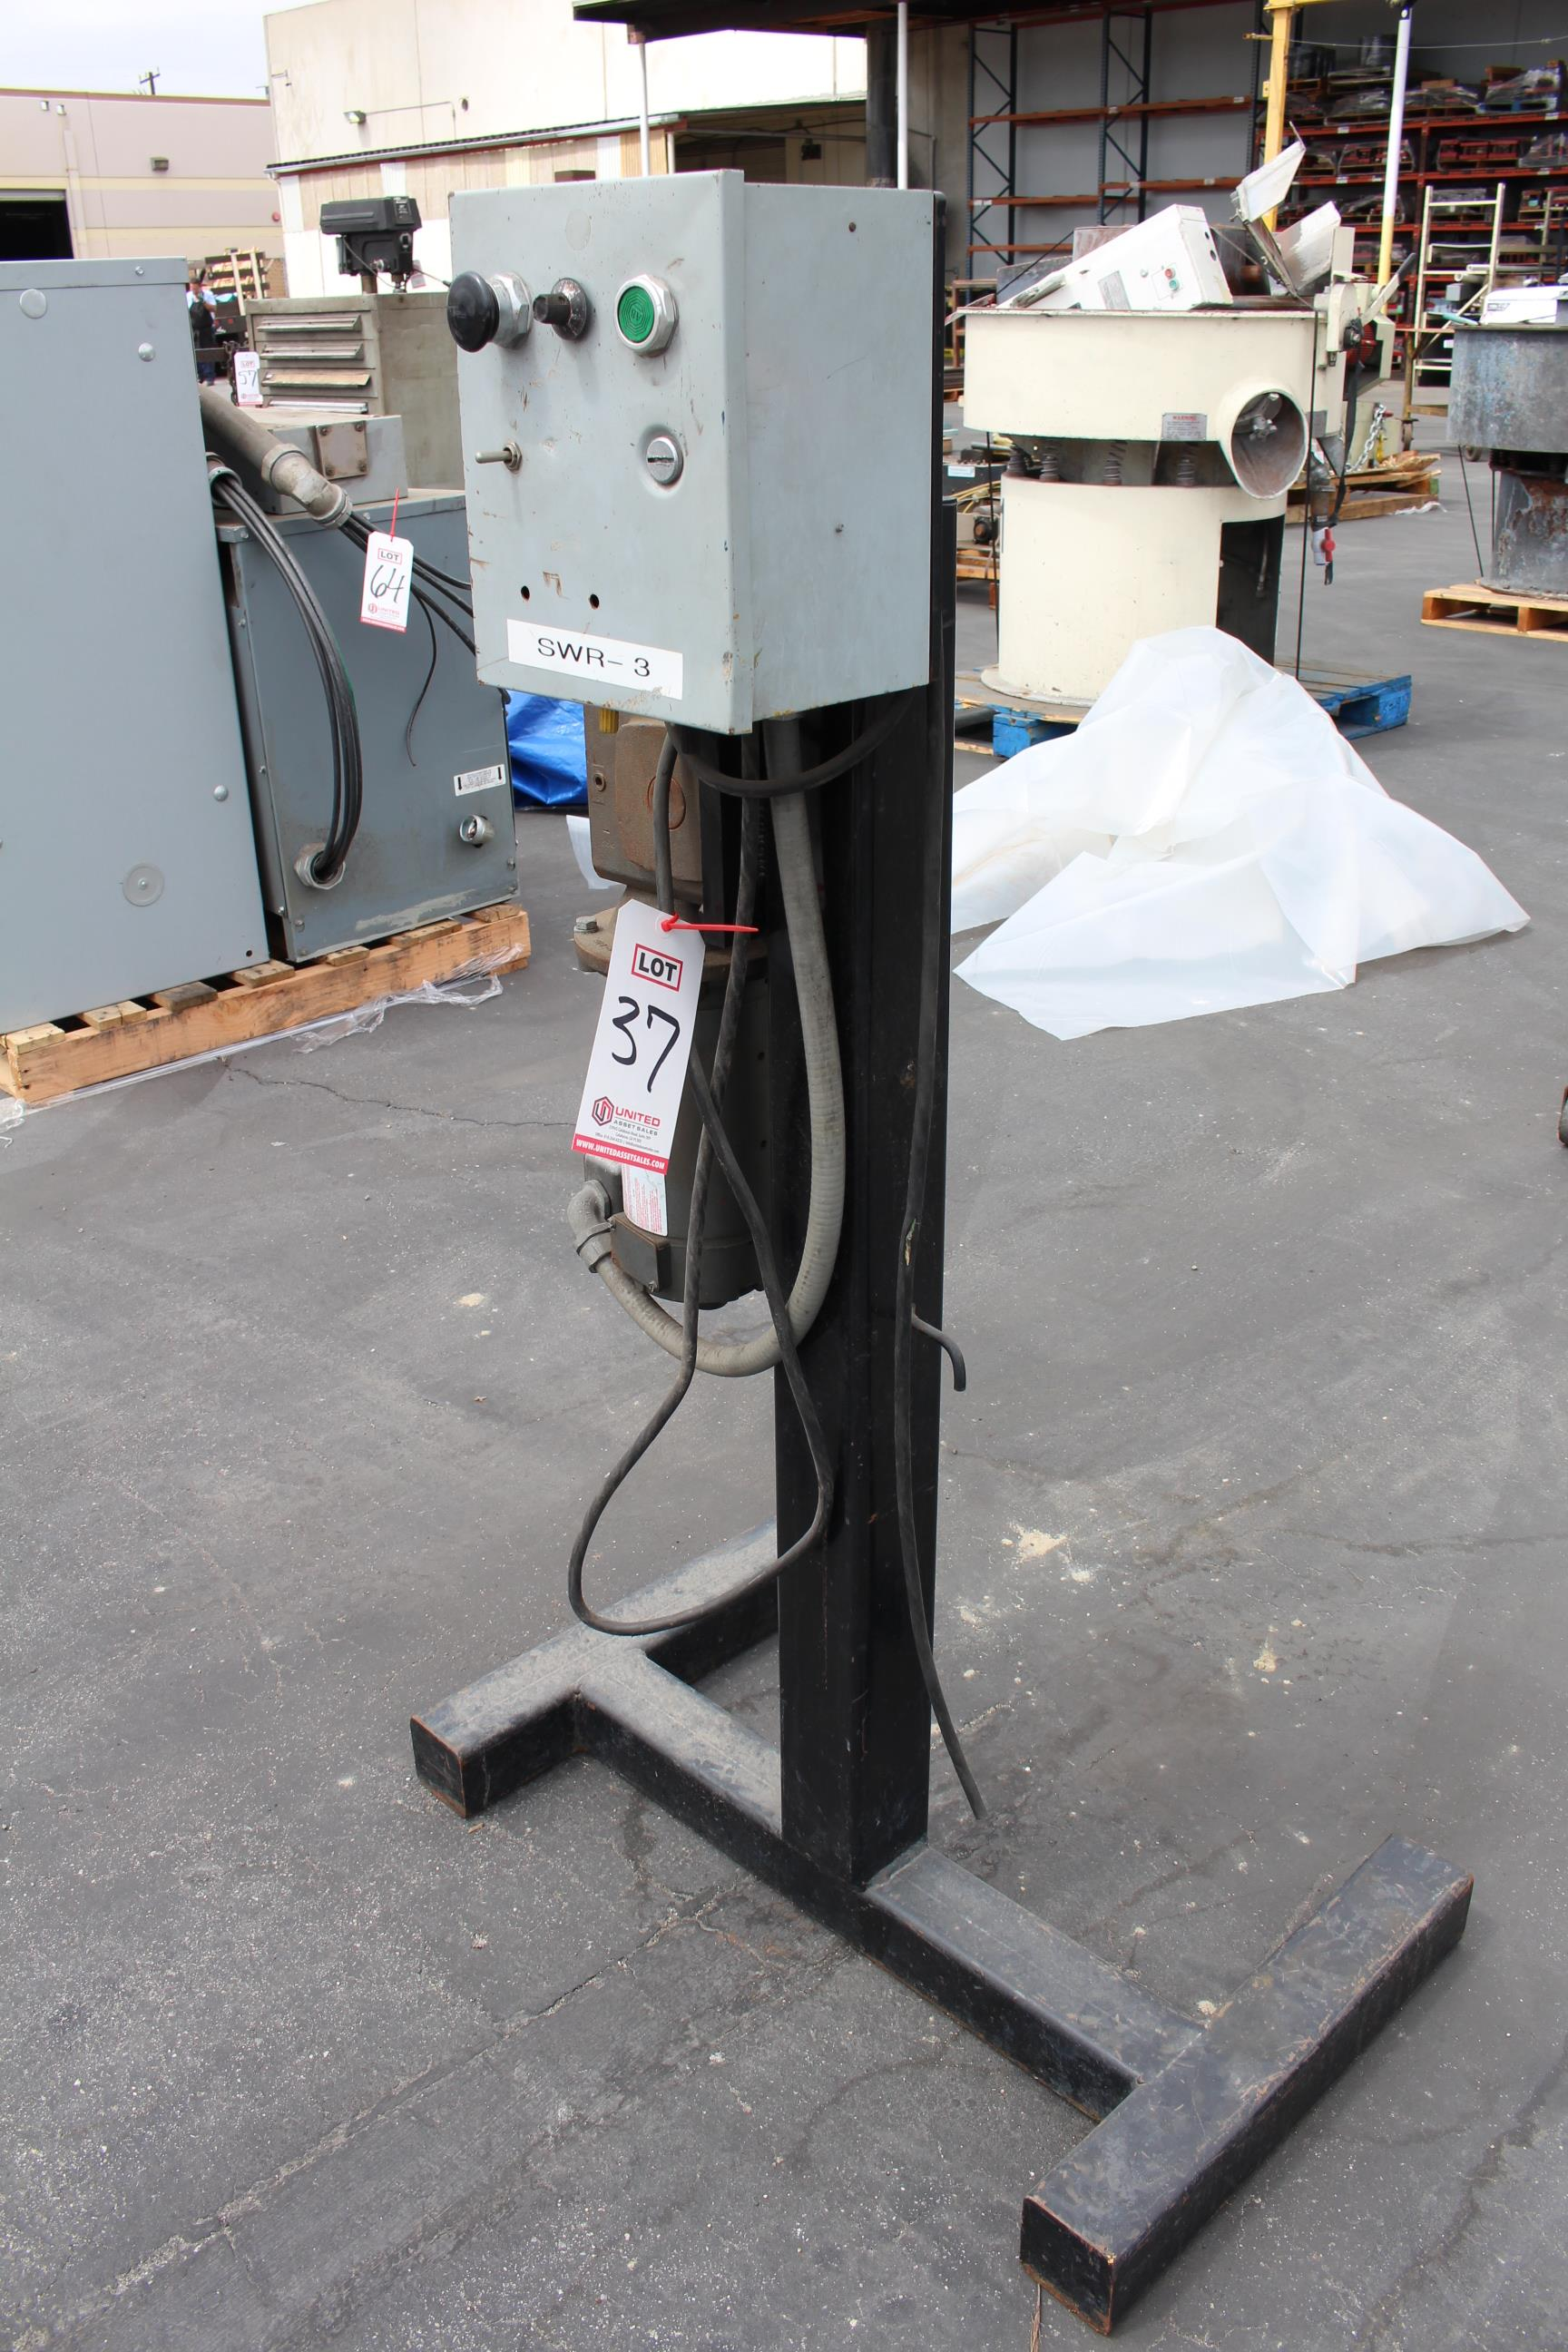 Lot 37 - CONTROL STAND